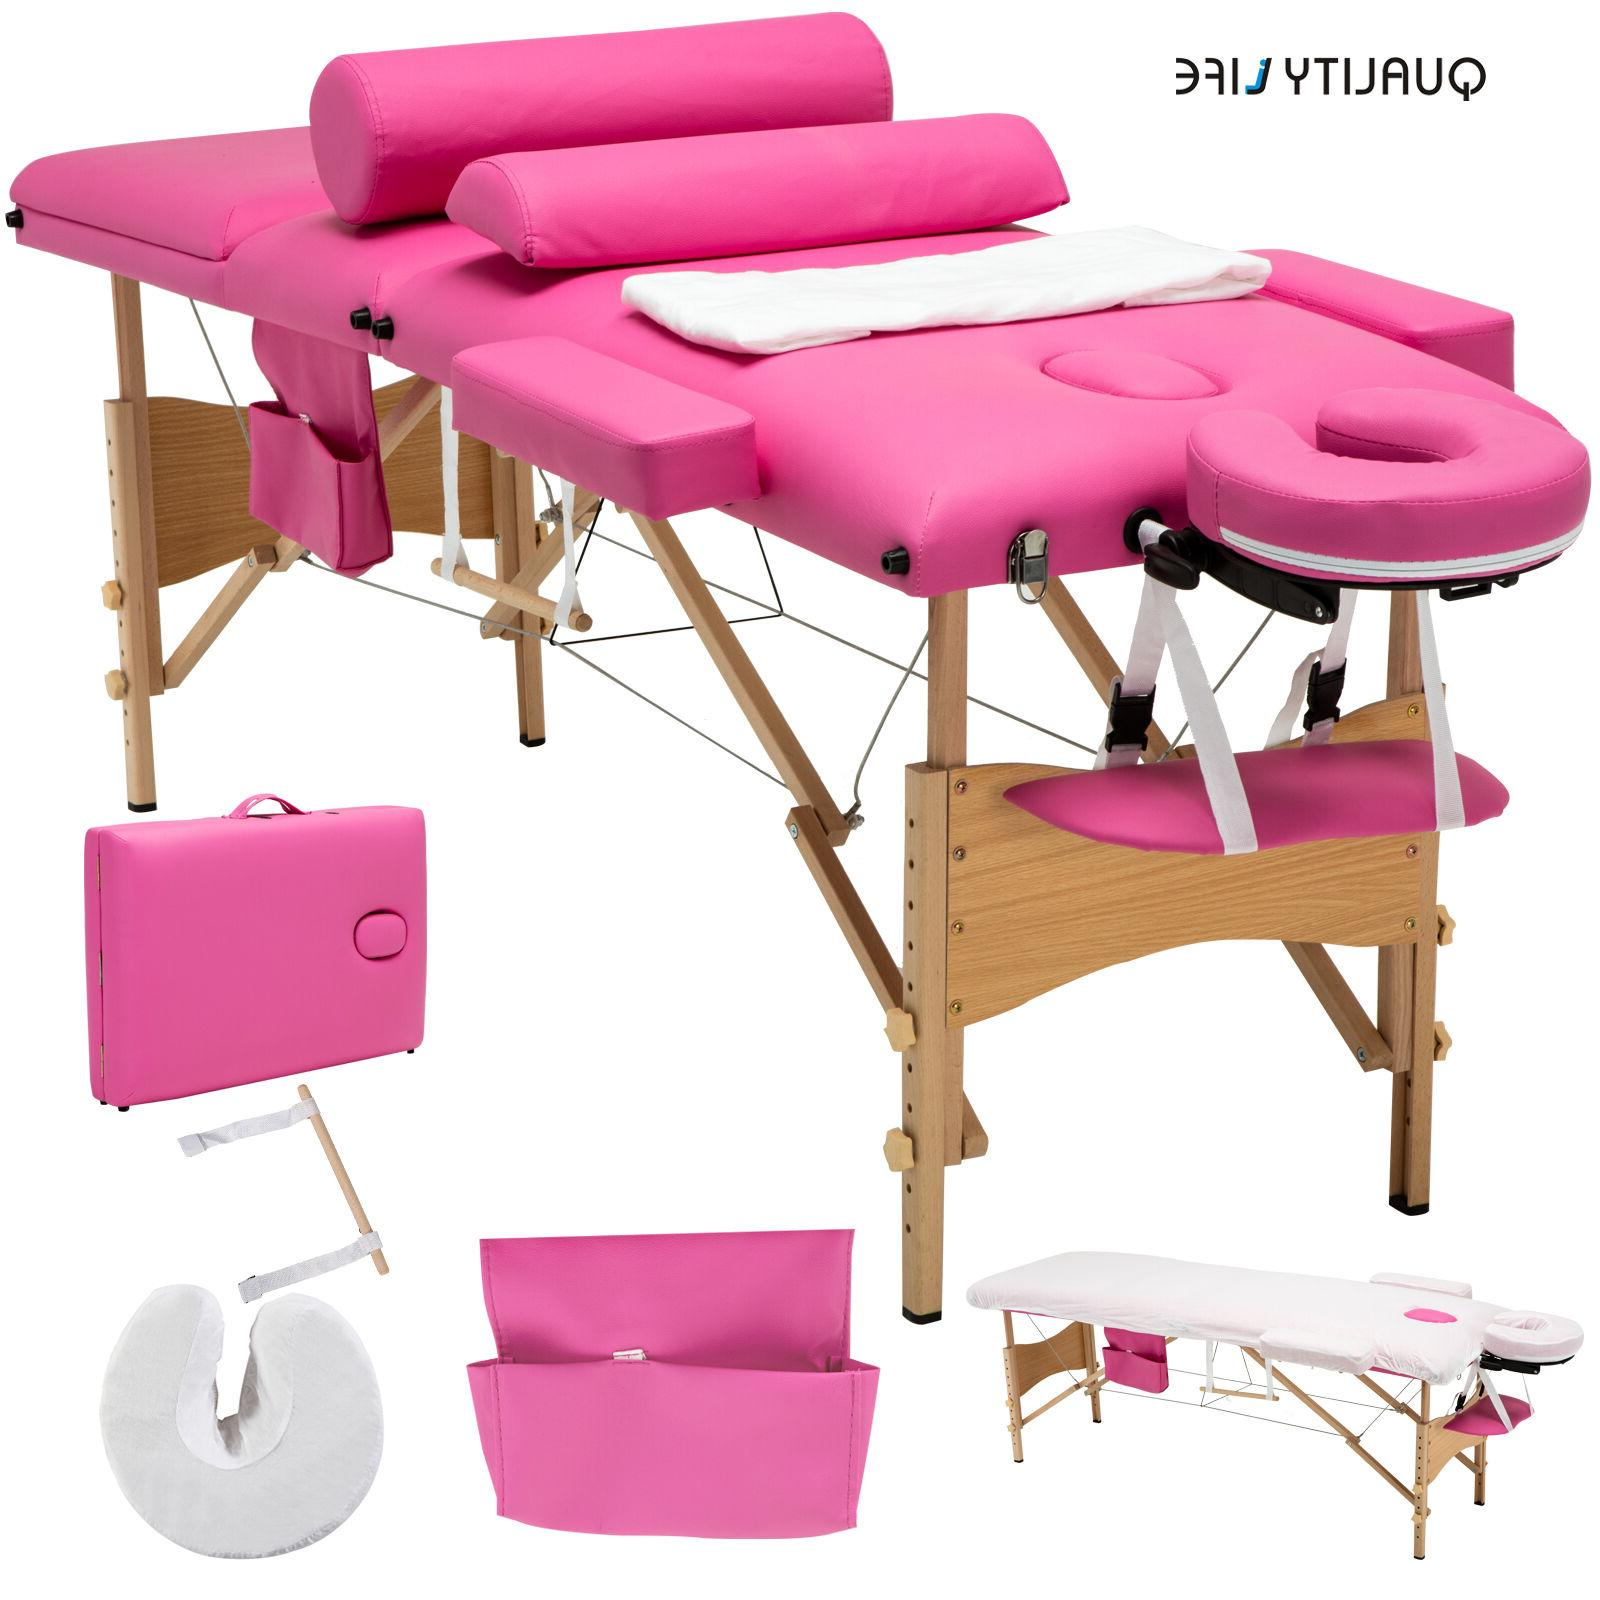 84 l massage table 3